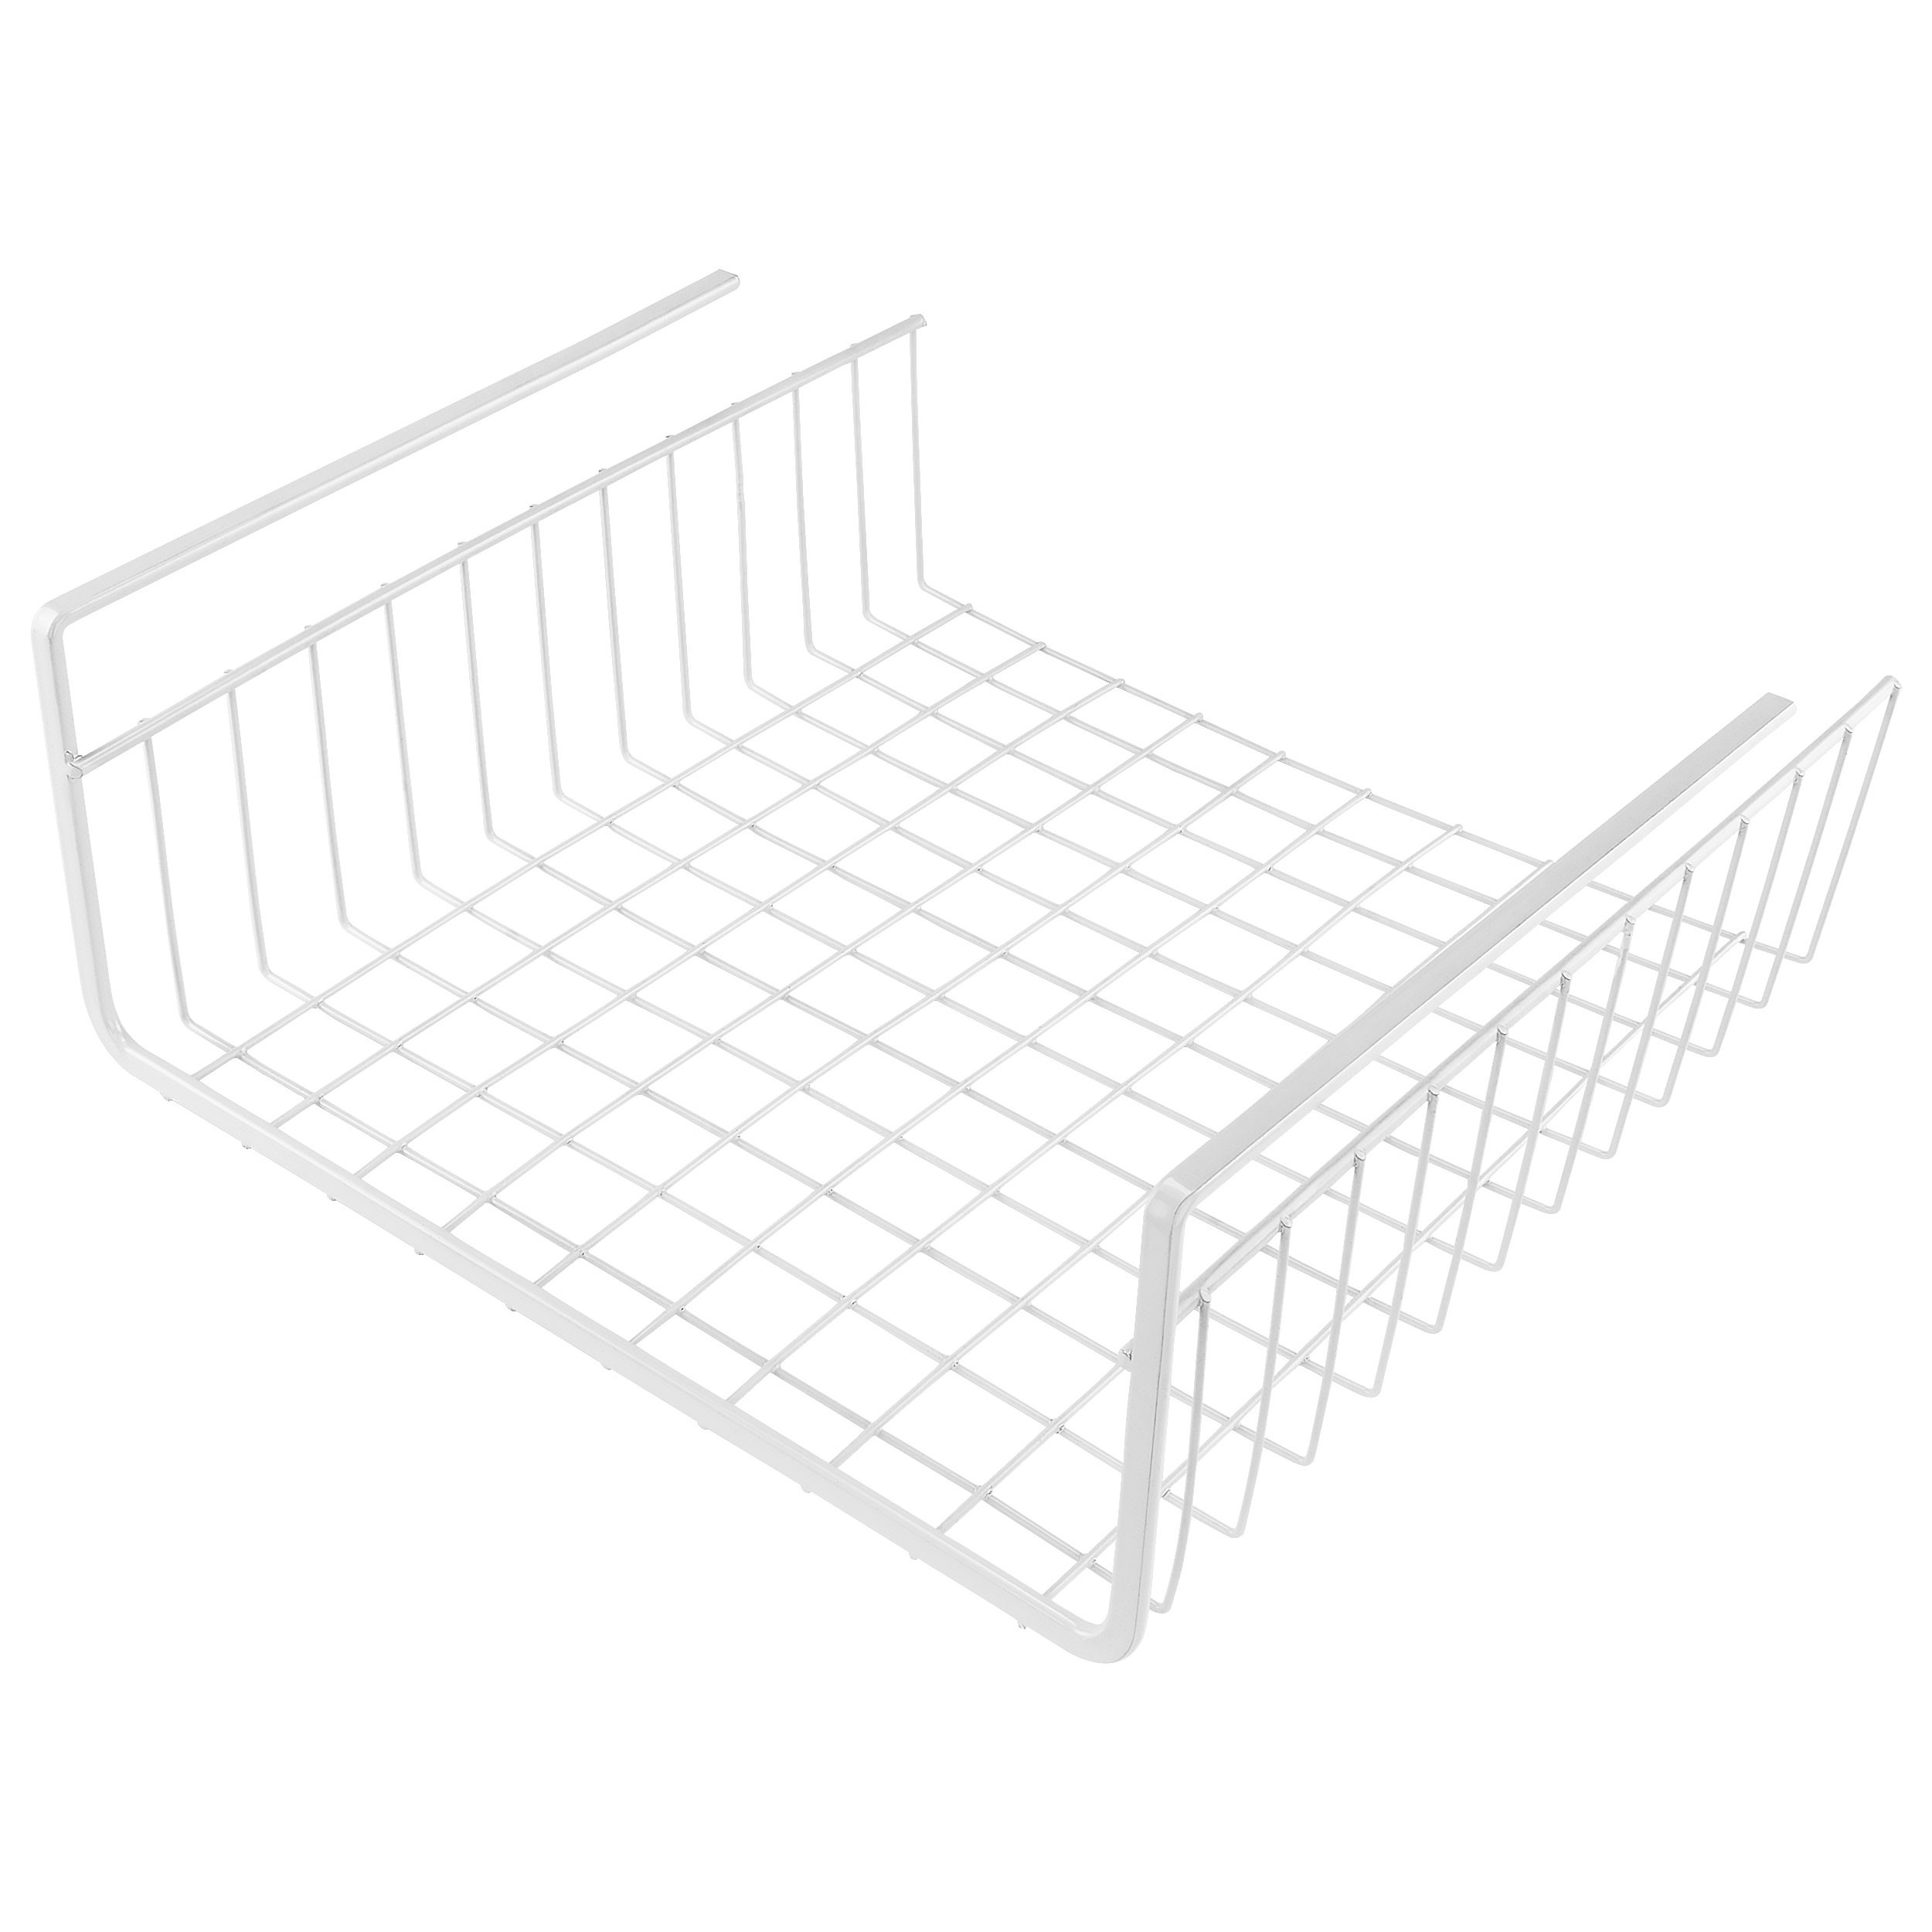 "Southern Homewares Under Shelf Basket Wire Wrap Rack White Storage Organizer for Kitchen Pantry, 12 1/2"" x 12 1/2"" x 5"""